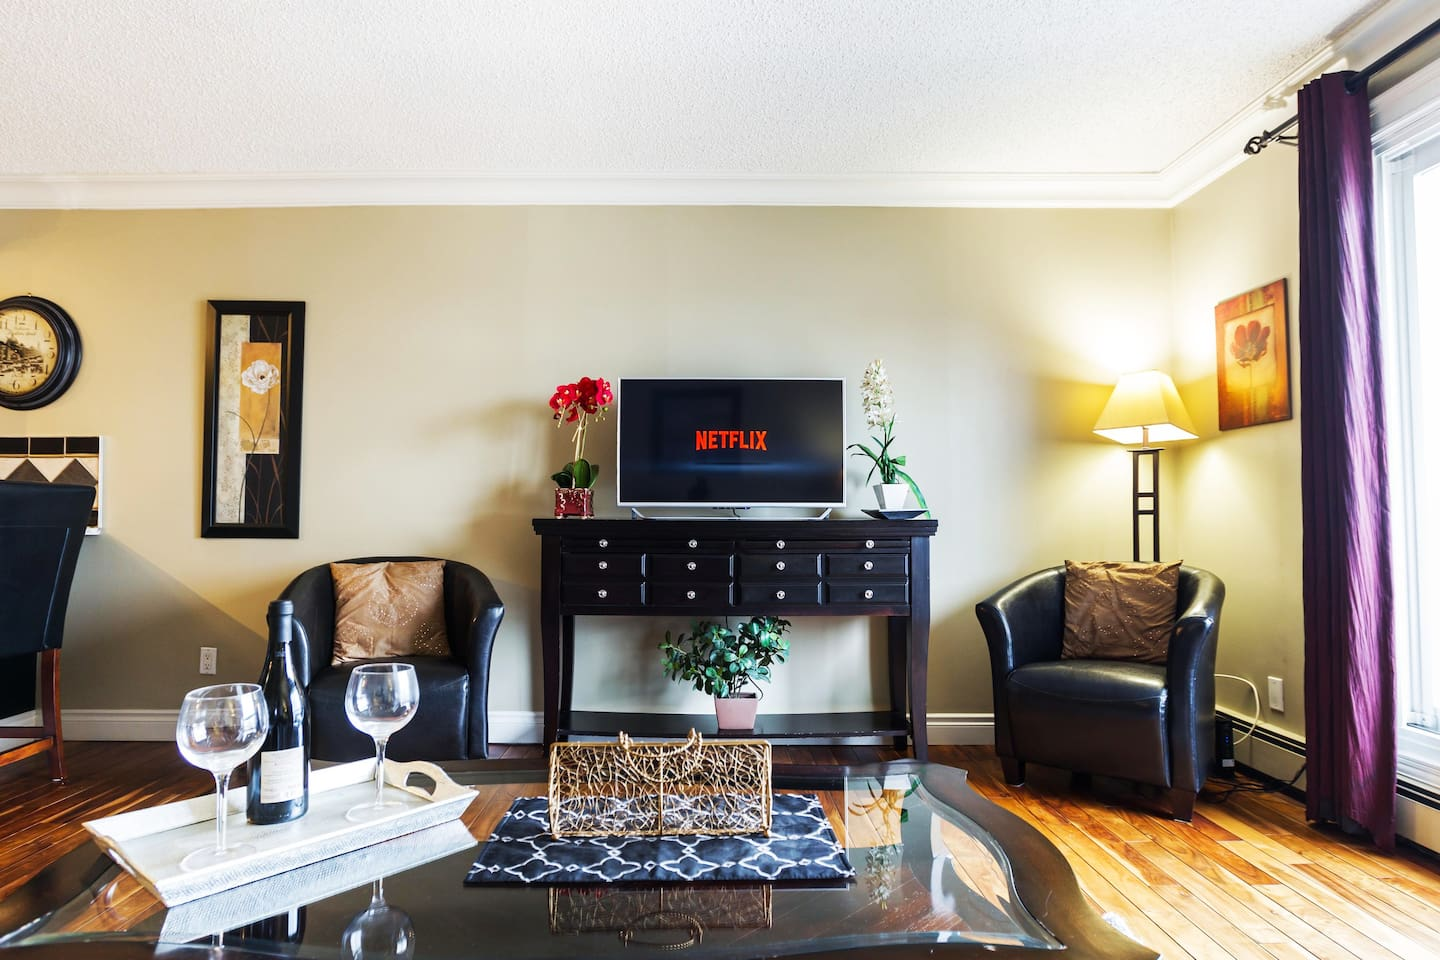 Snuggle up with your significant other with a bottle of wine and Netflix!